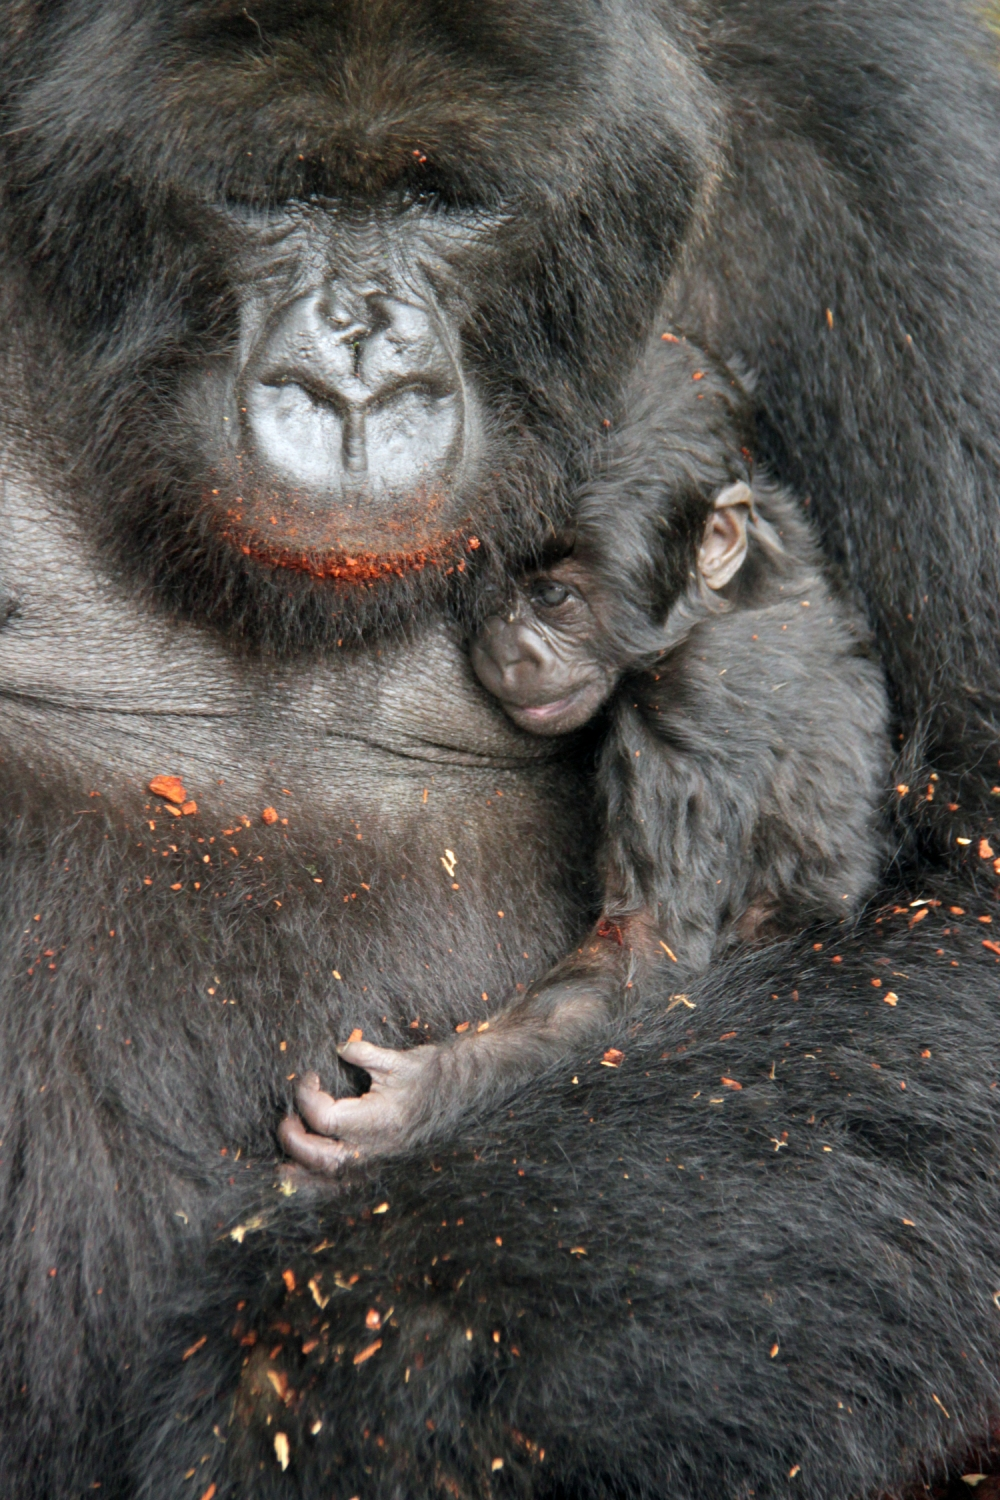 Gorilla love - Mom with her 3 week old.lr